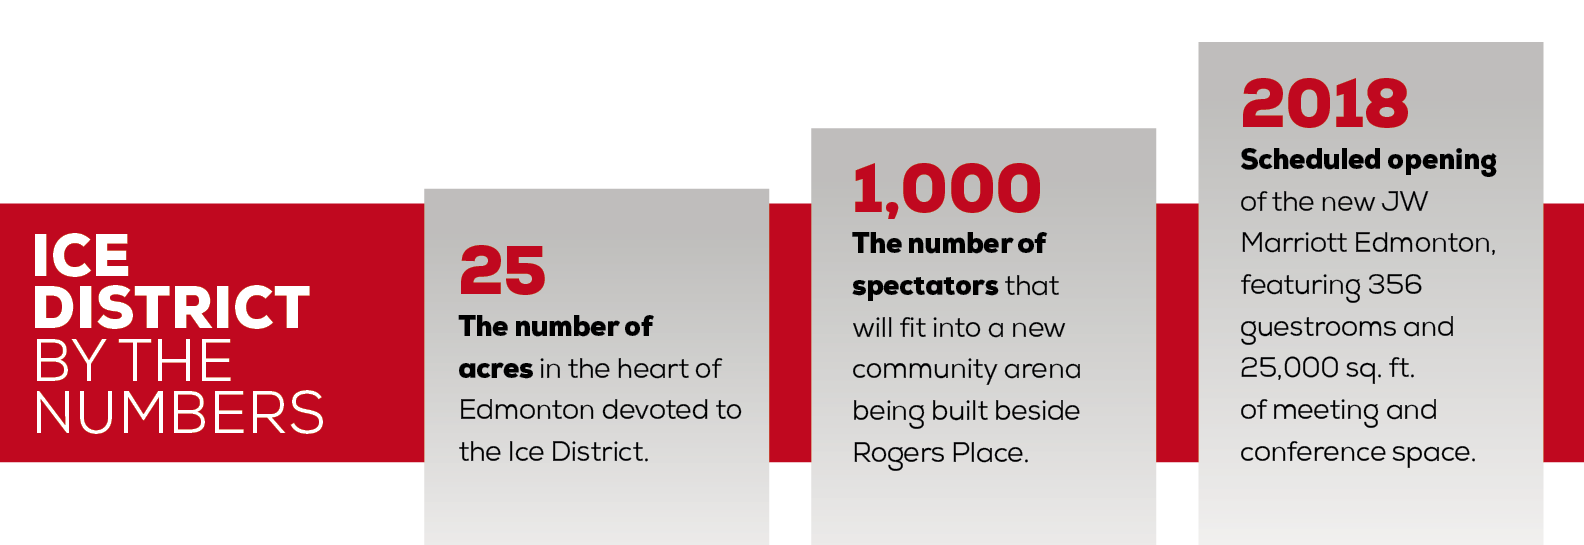 Ice District: By the Numbers